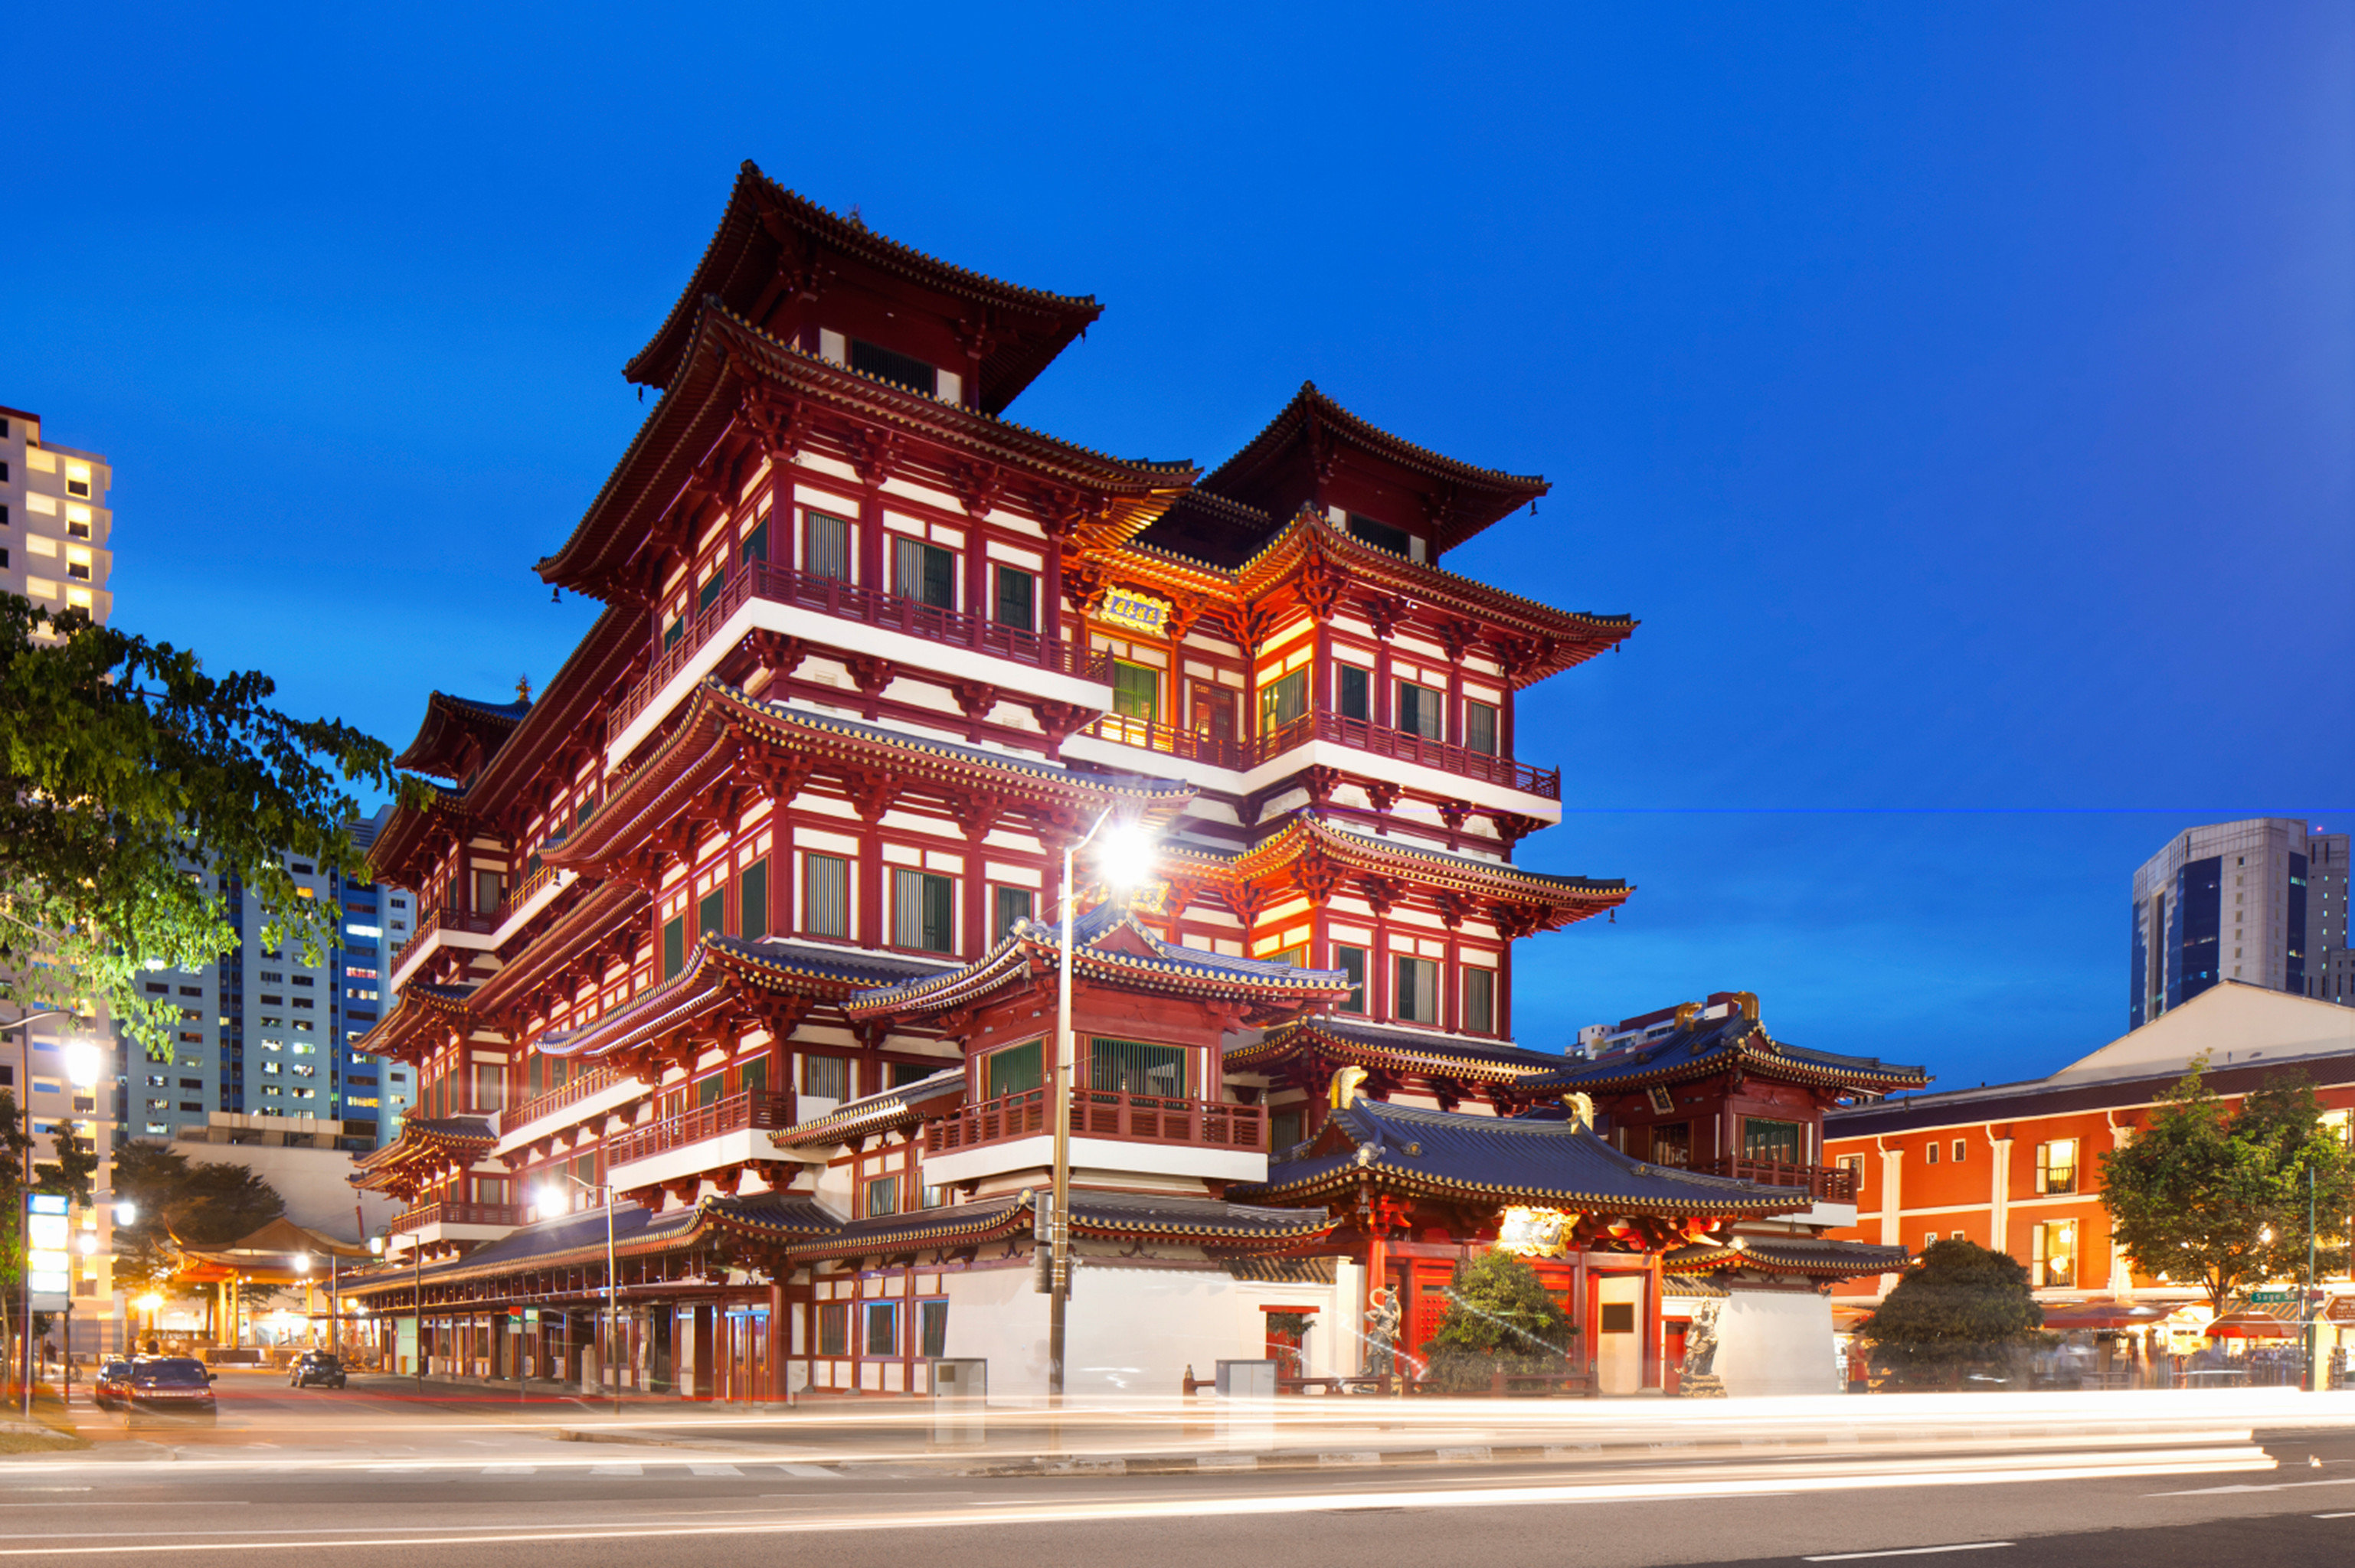 Architecture Buildings City Exterior sky building landmark Town street house Downtown plaza palace temple tower Resort place of worship